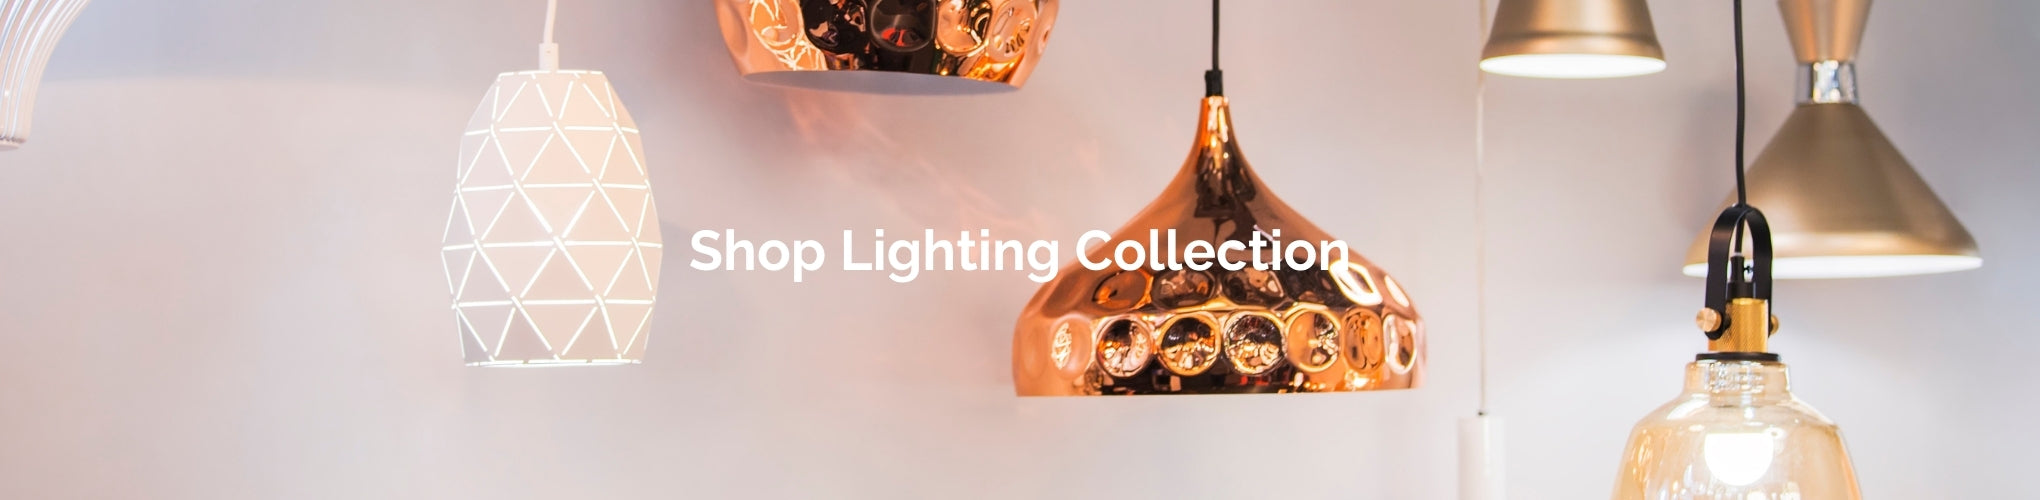 Lighting Collection from Estilo Living - Buy Lighting for small spaces and small homes Online Now!